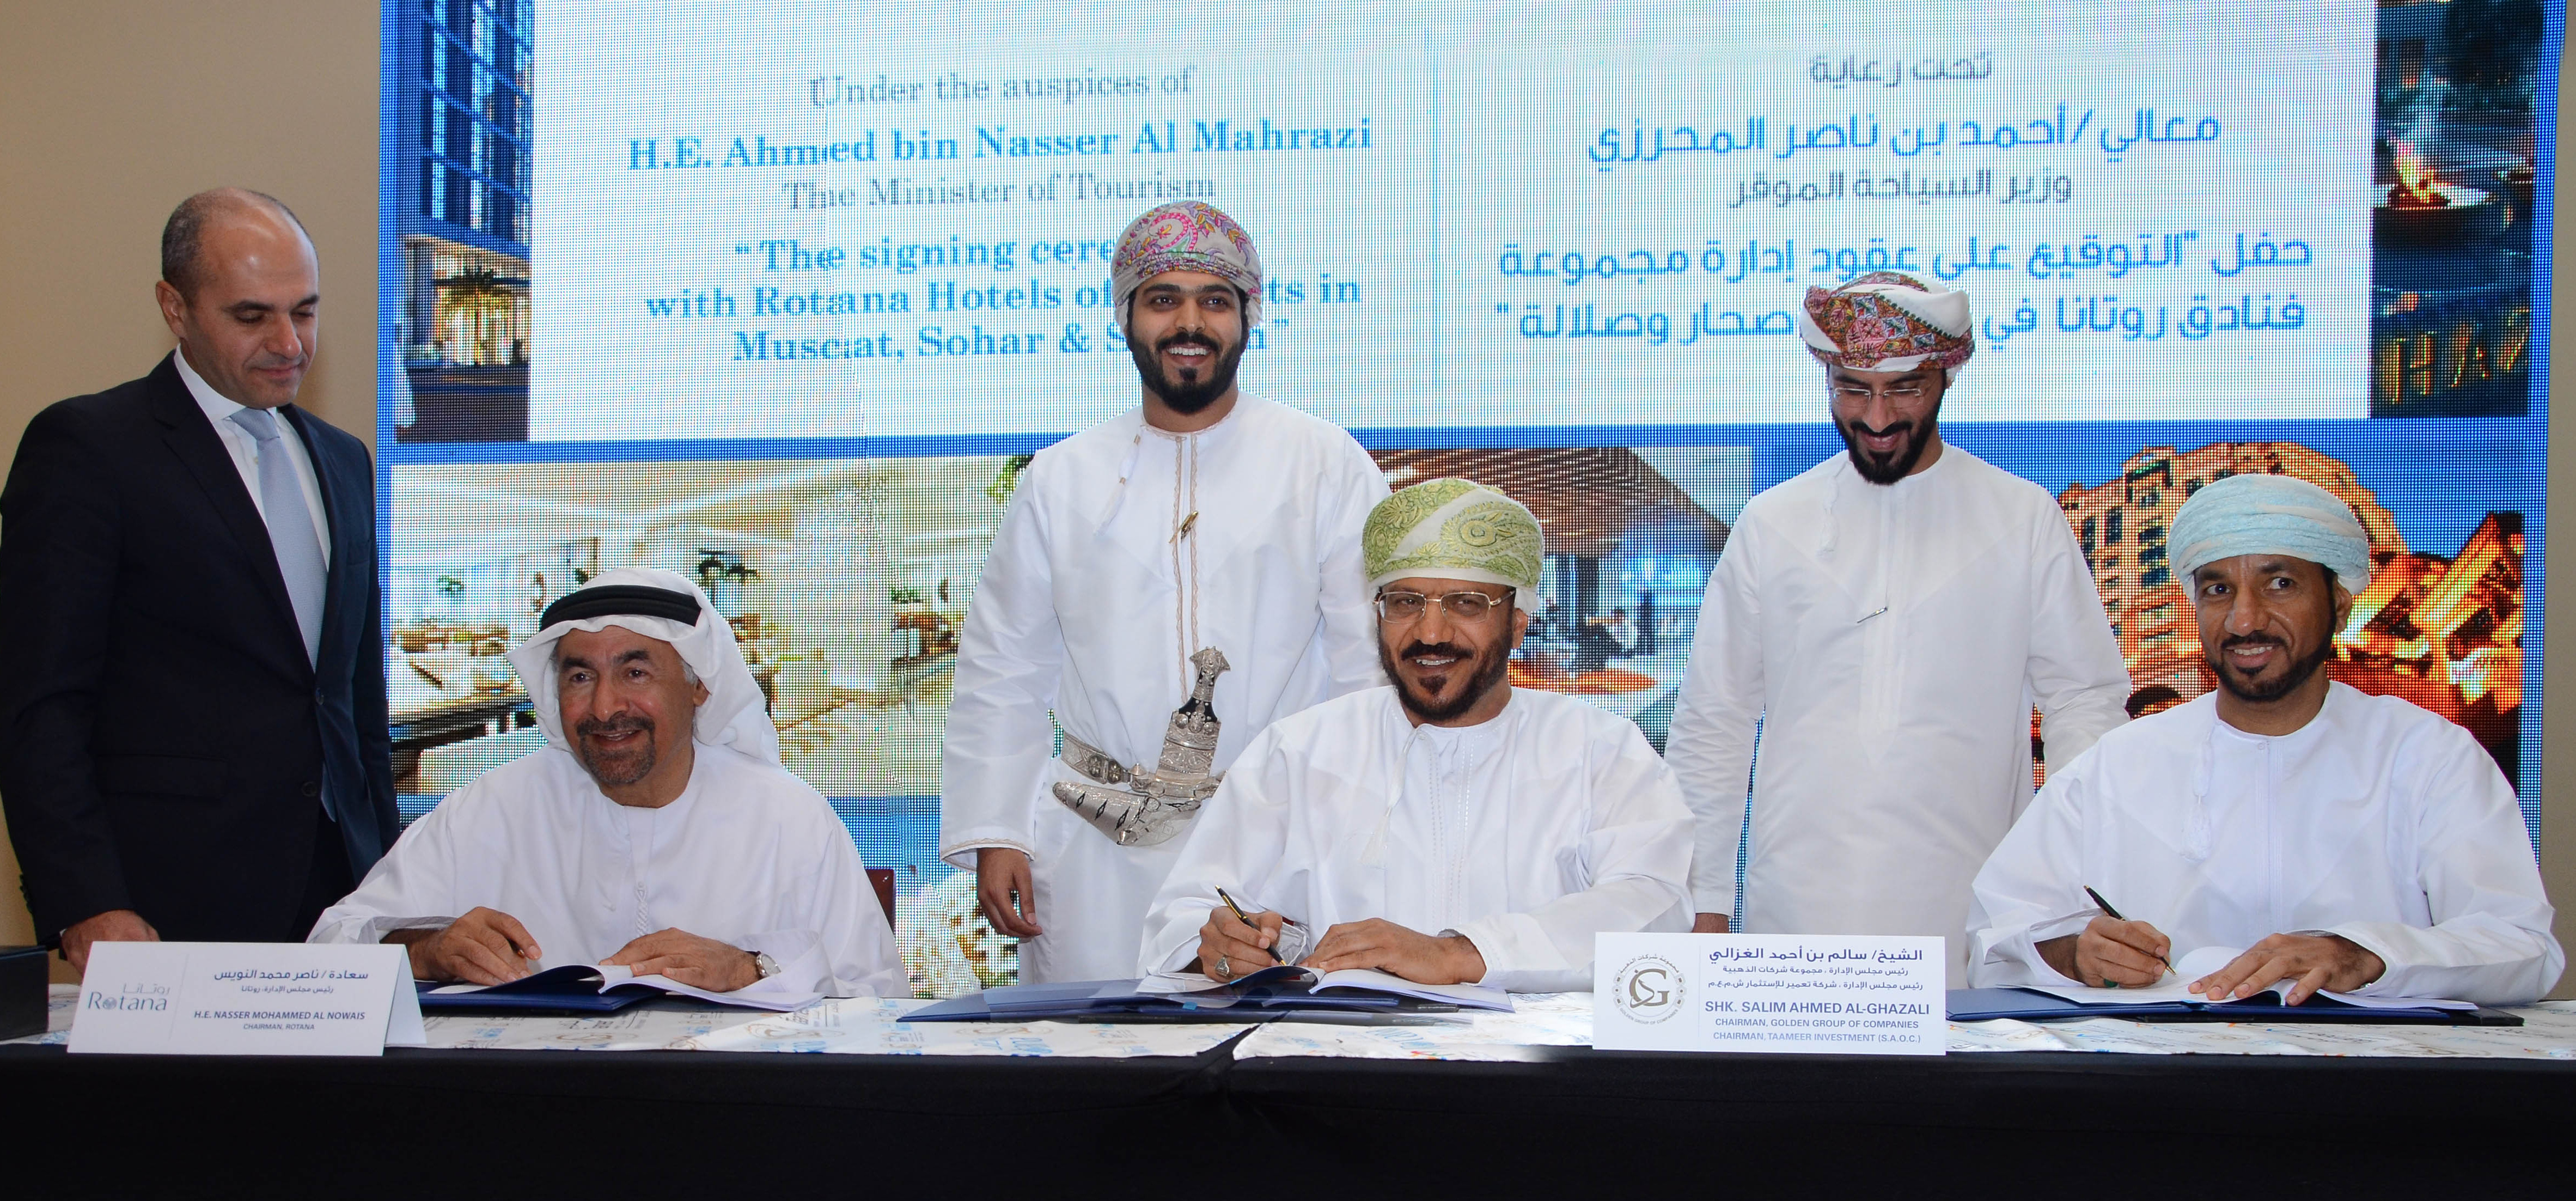 The signing ceremony was held on November 9 in Jibreen hall at Muscat Intercontinental Hotel under the patronage of HE Ahmed bin Nasser Al Mahrazi, Minister of Tourism